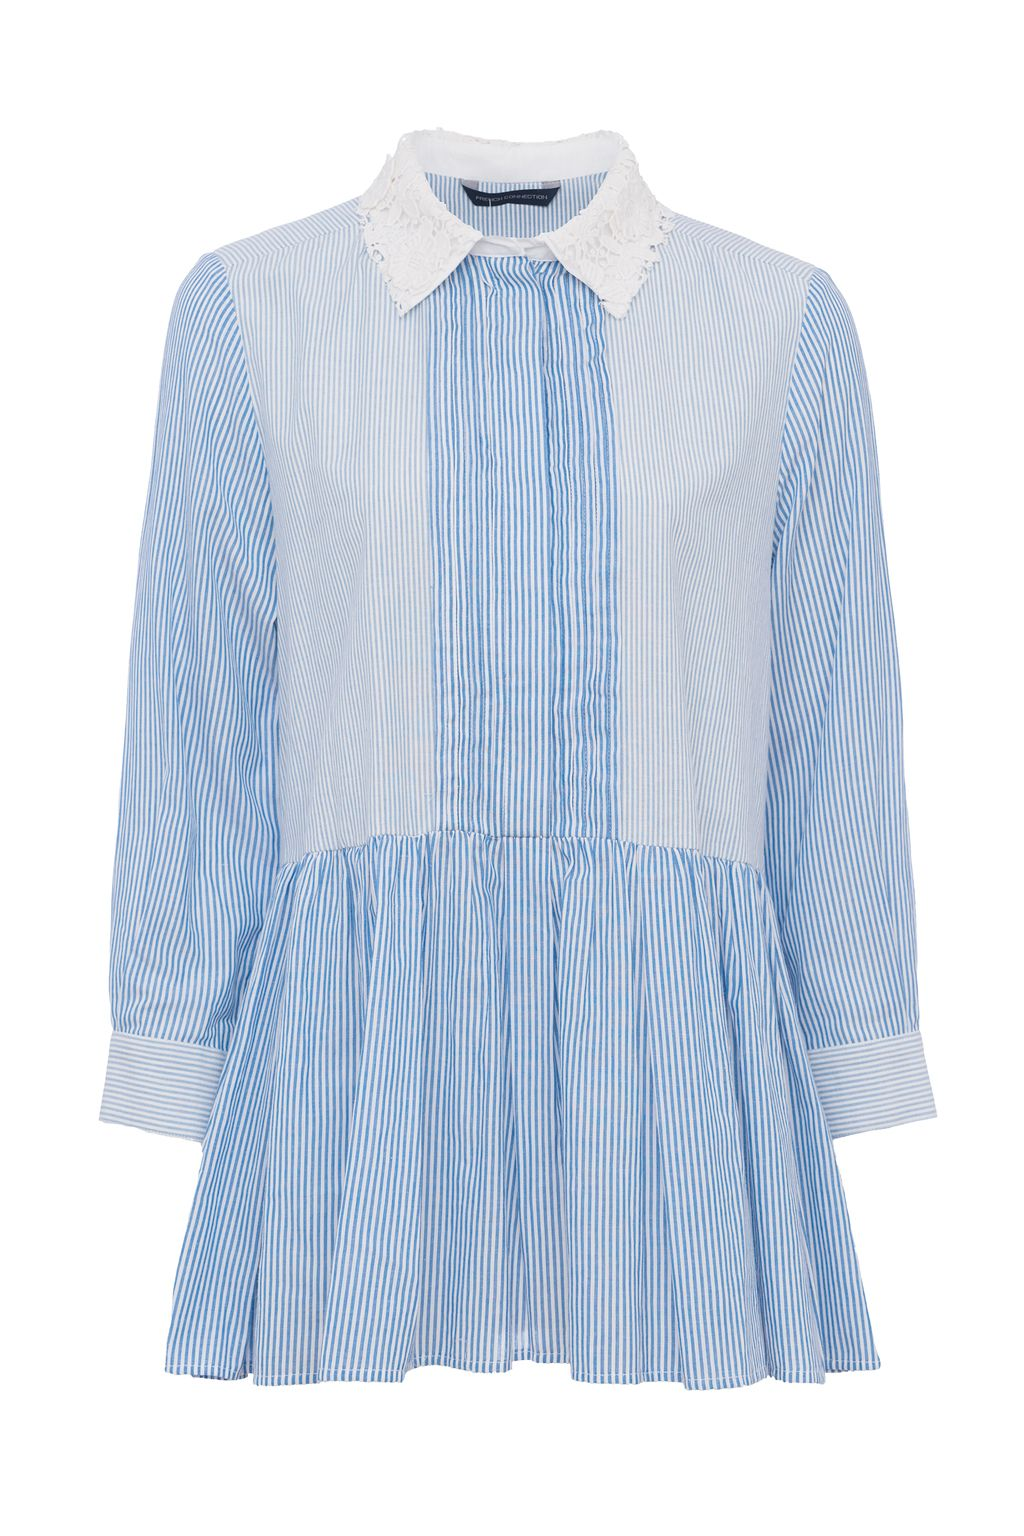 French Connection Nuru Schiffley Shirt, Blue